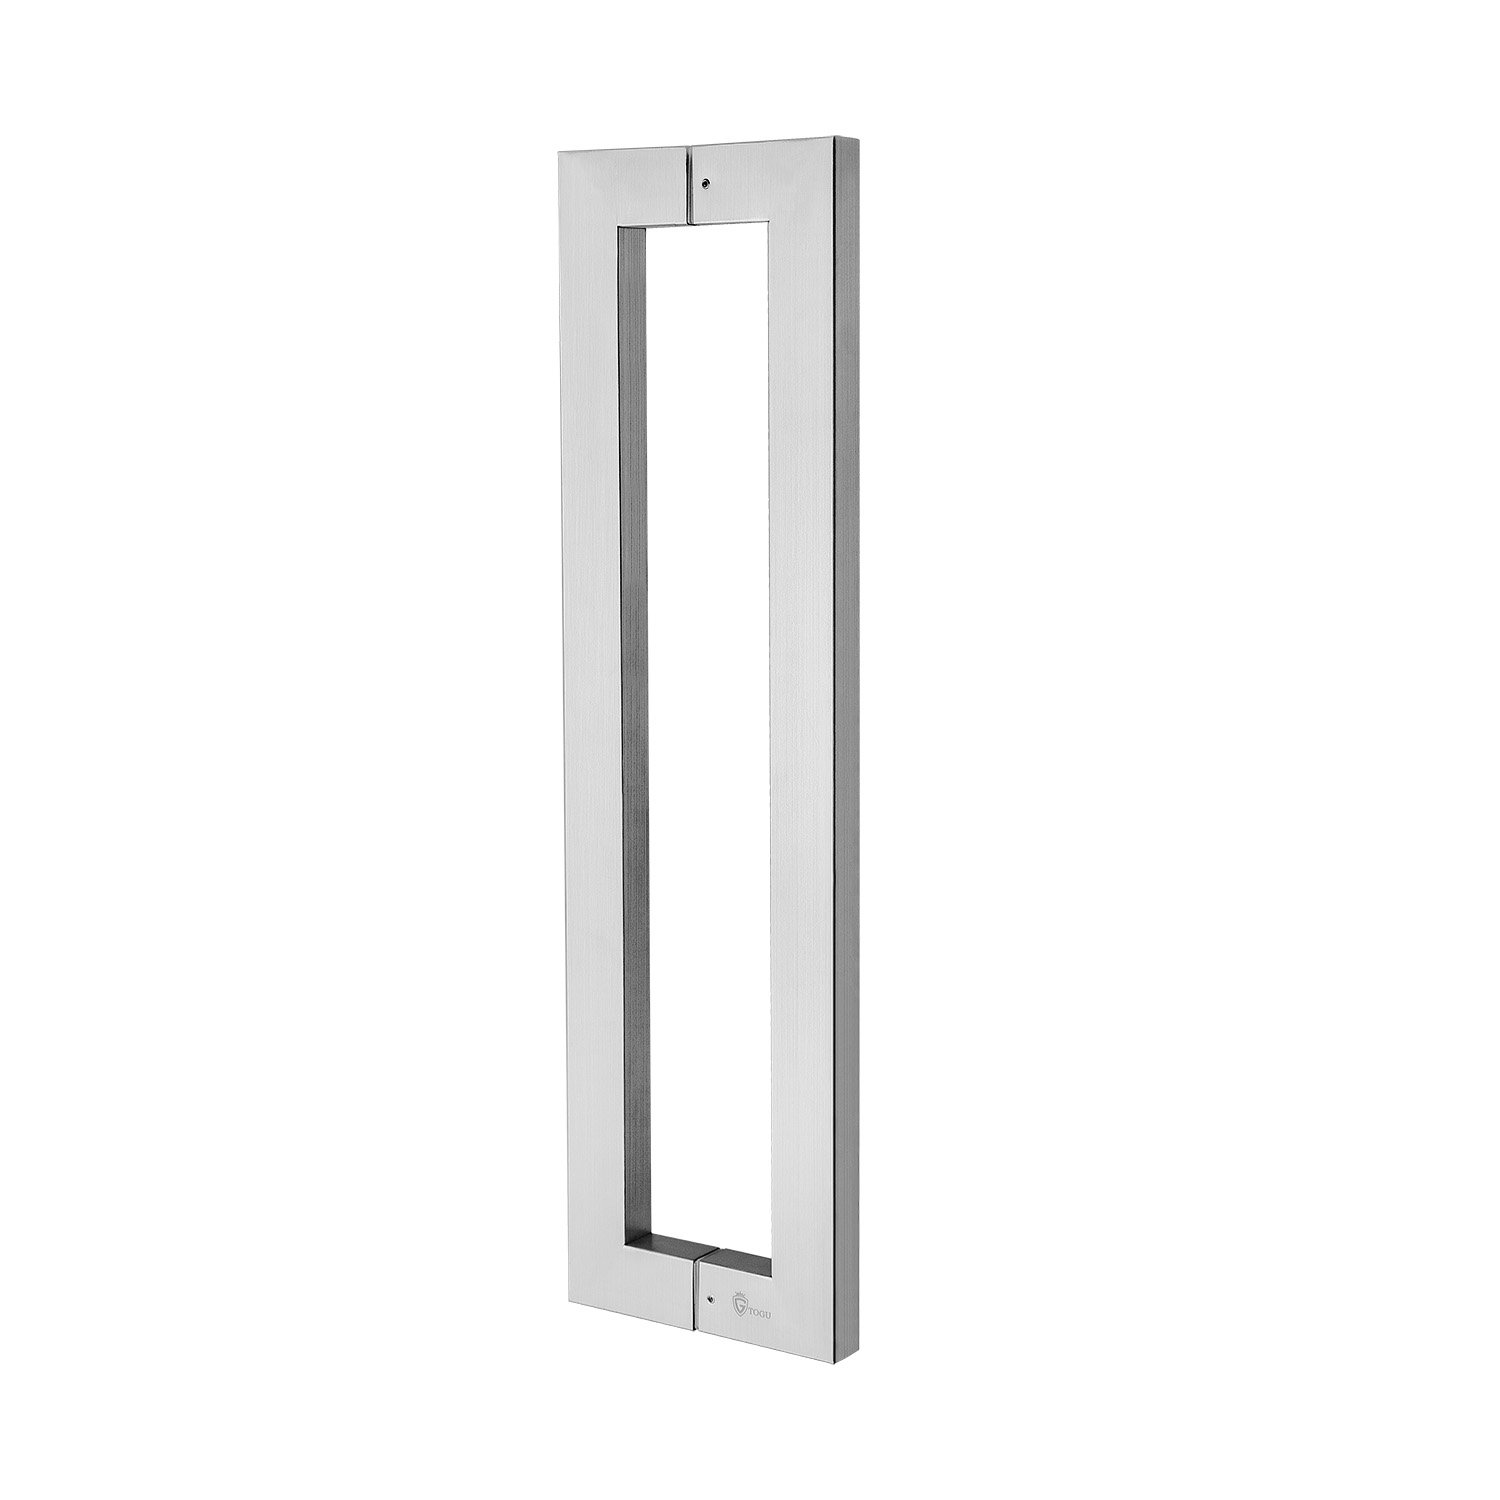 TOGU TG-6013 900mm/36 inches Square/Rectangle Shape Stainless Steel Push Pull Door Handle for Solid Wood, Timber, Glass and Steel Doors, Full Brushed Stainless Steel Finish